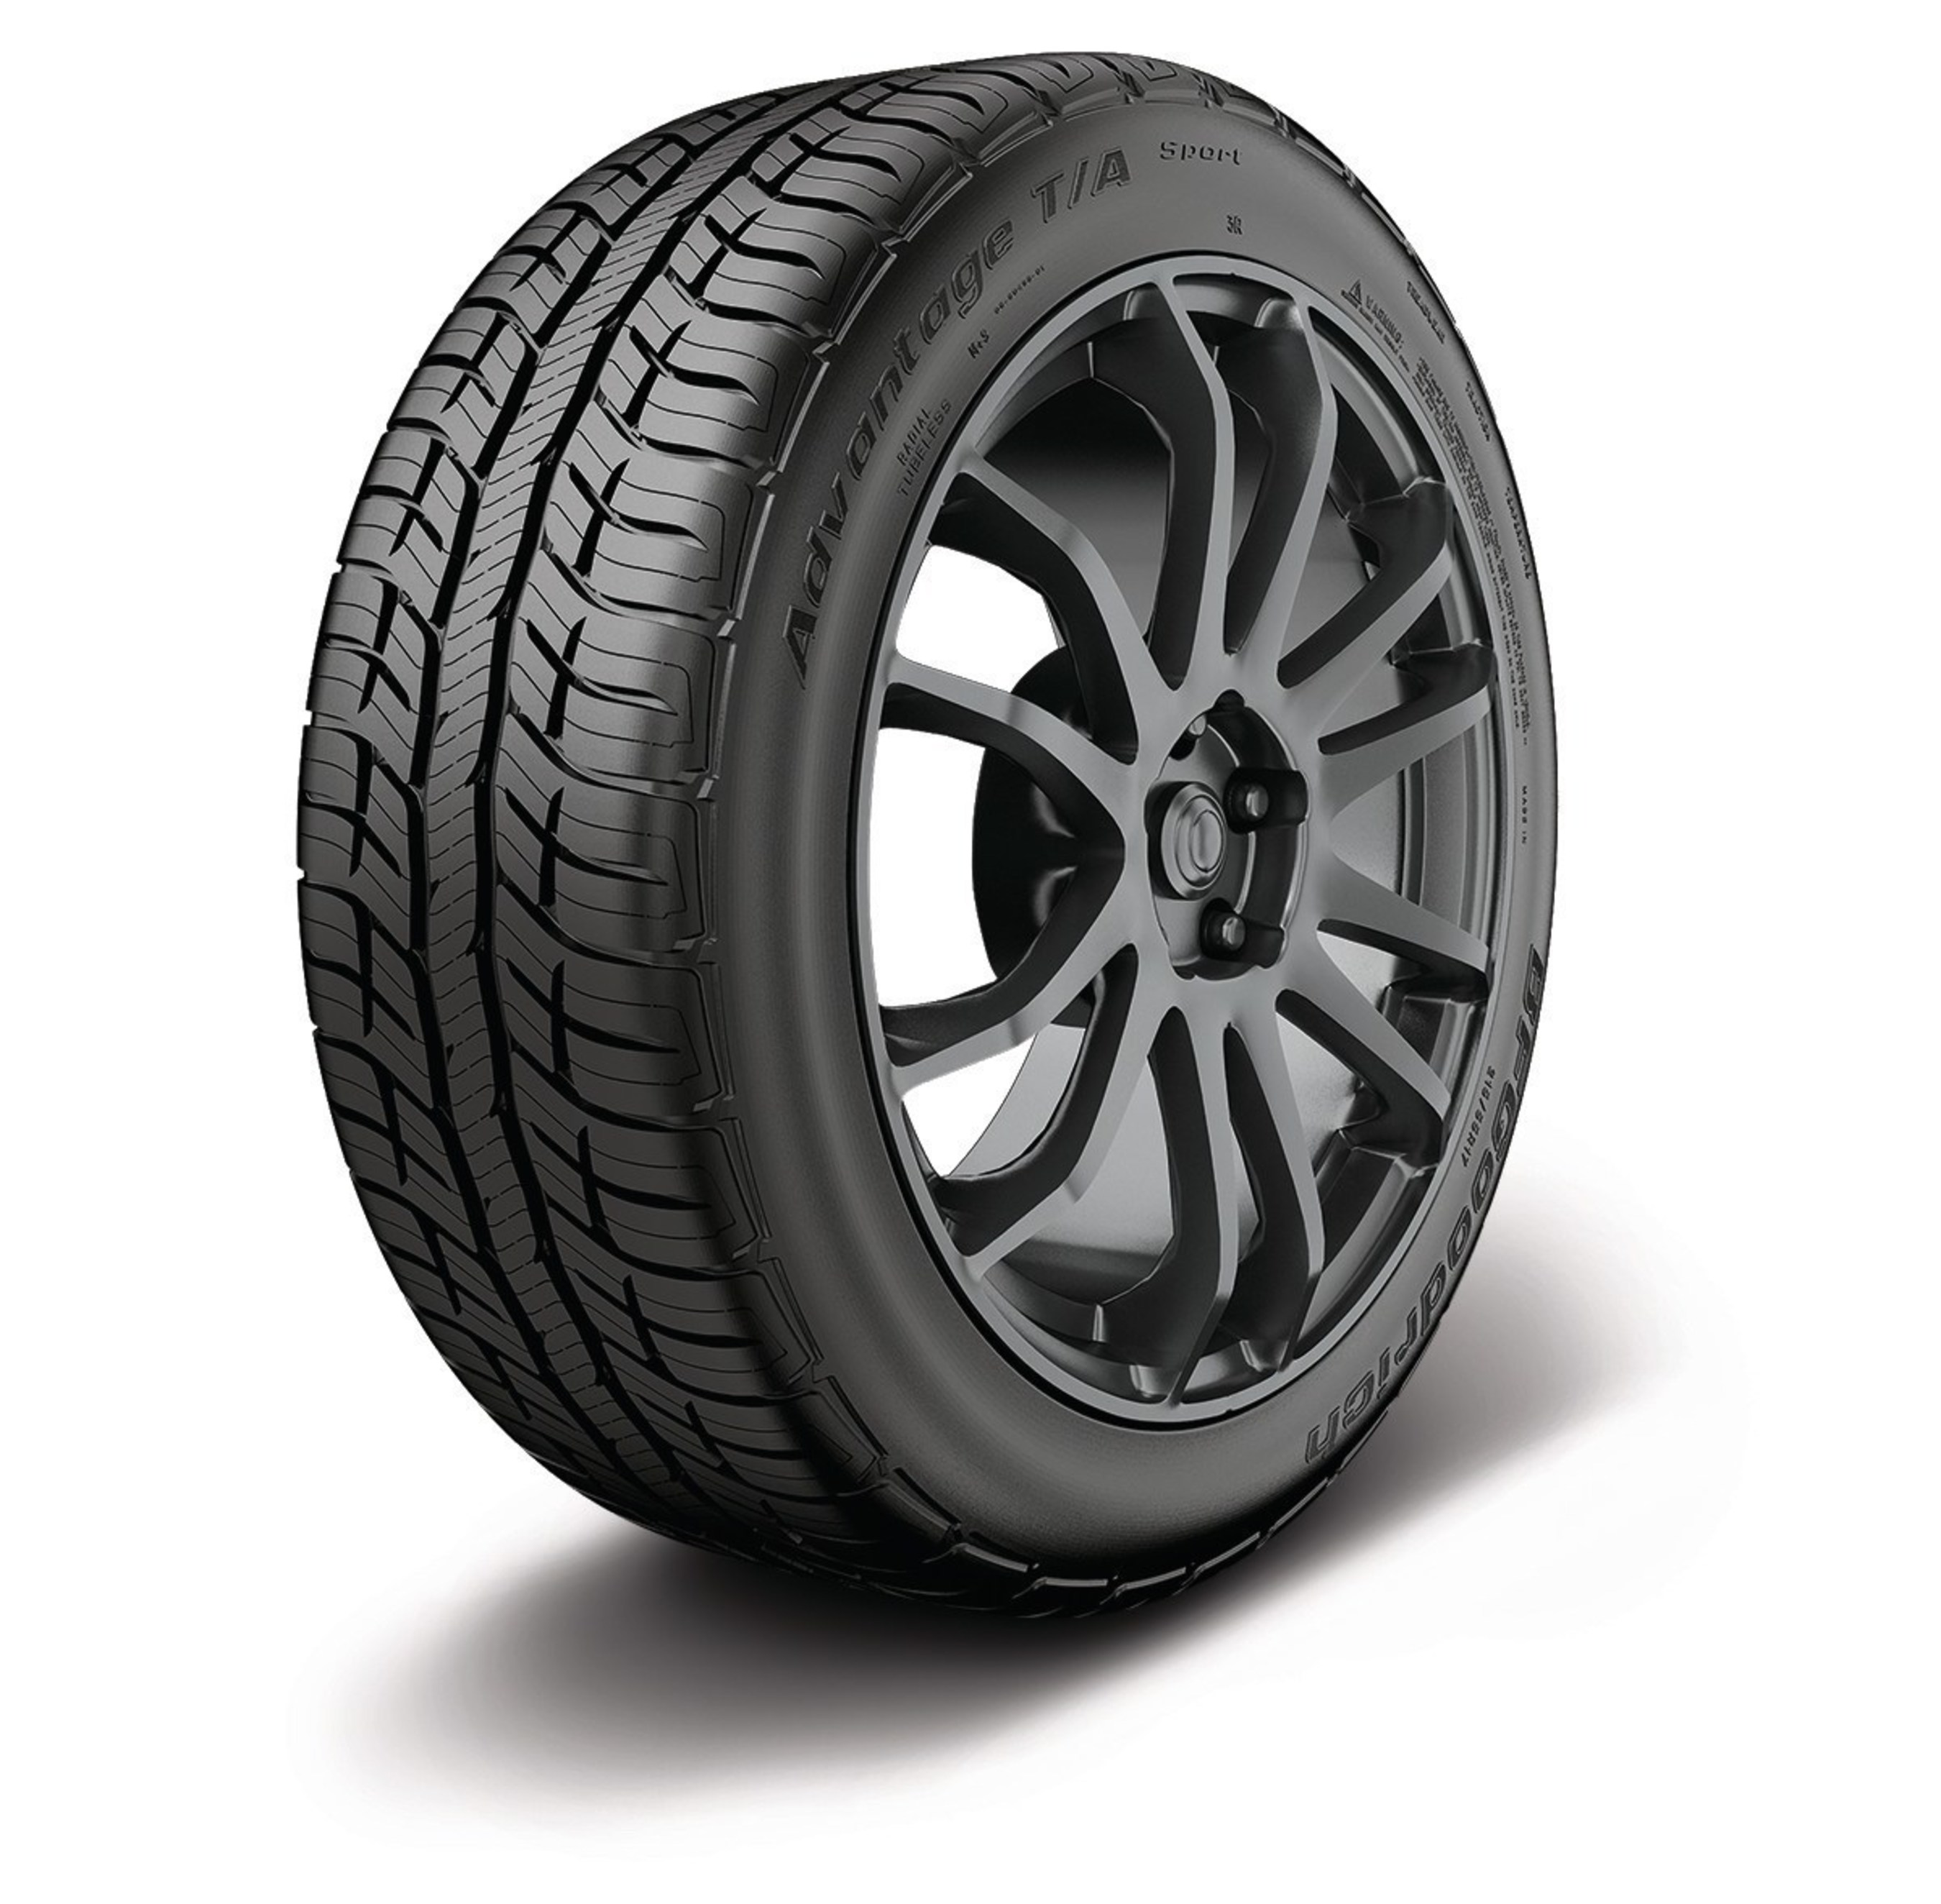 Bfgoodrich Tires Debuts New Advantage Ta Sport A Tire With A